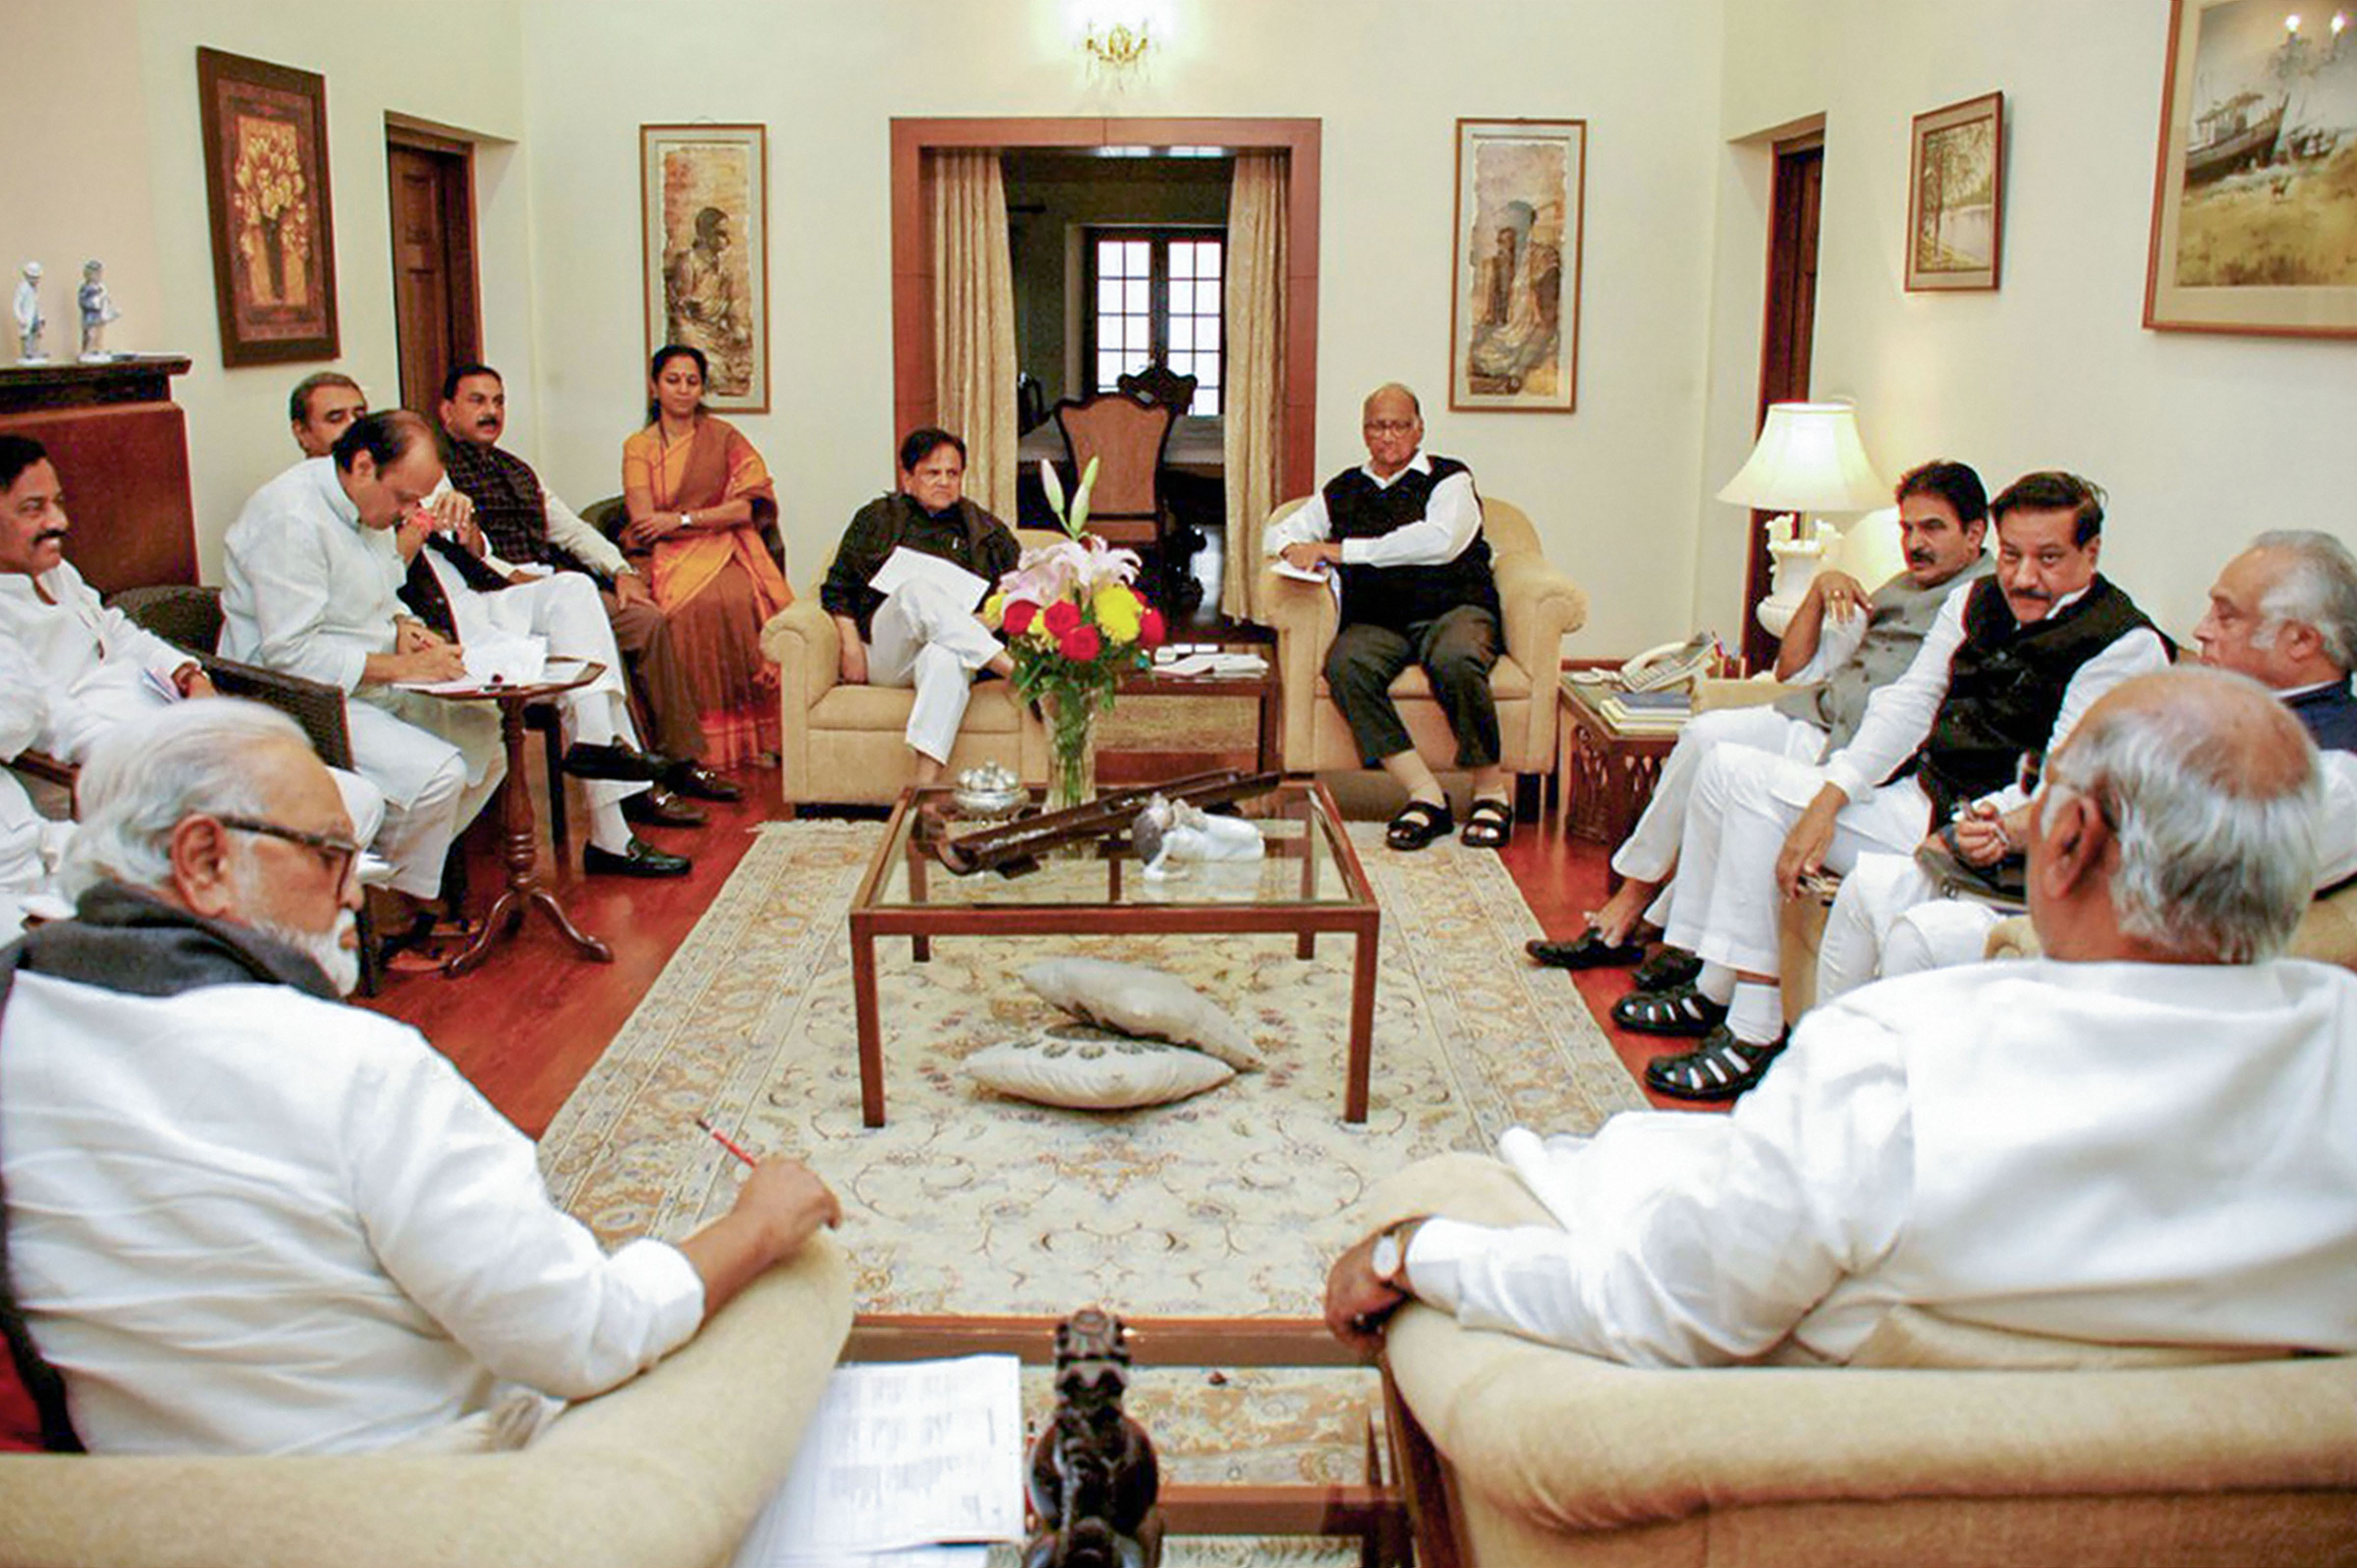 NCP chief Sharad Pawar, senior Congress leader Ahmed Patel and others during the NCP-Congress meeting on government formation in Maharashtra, at Pawar's residence in New Delhi, Thursday, November 21, 2019.